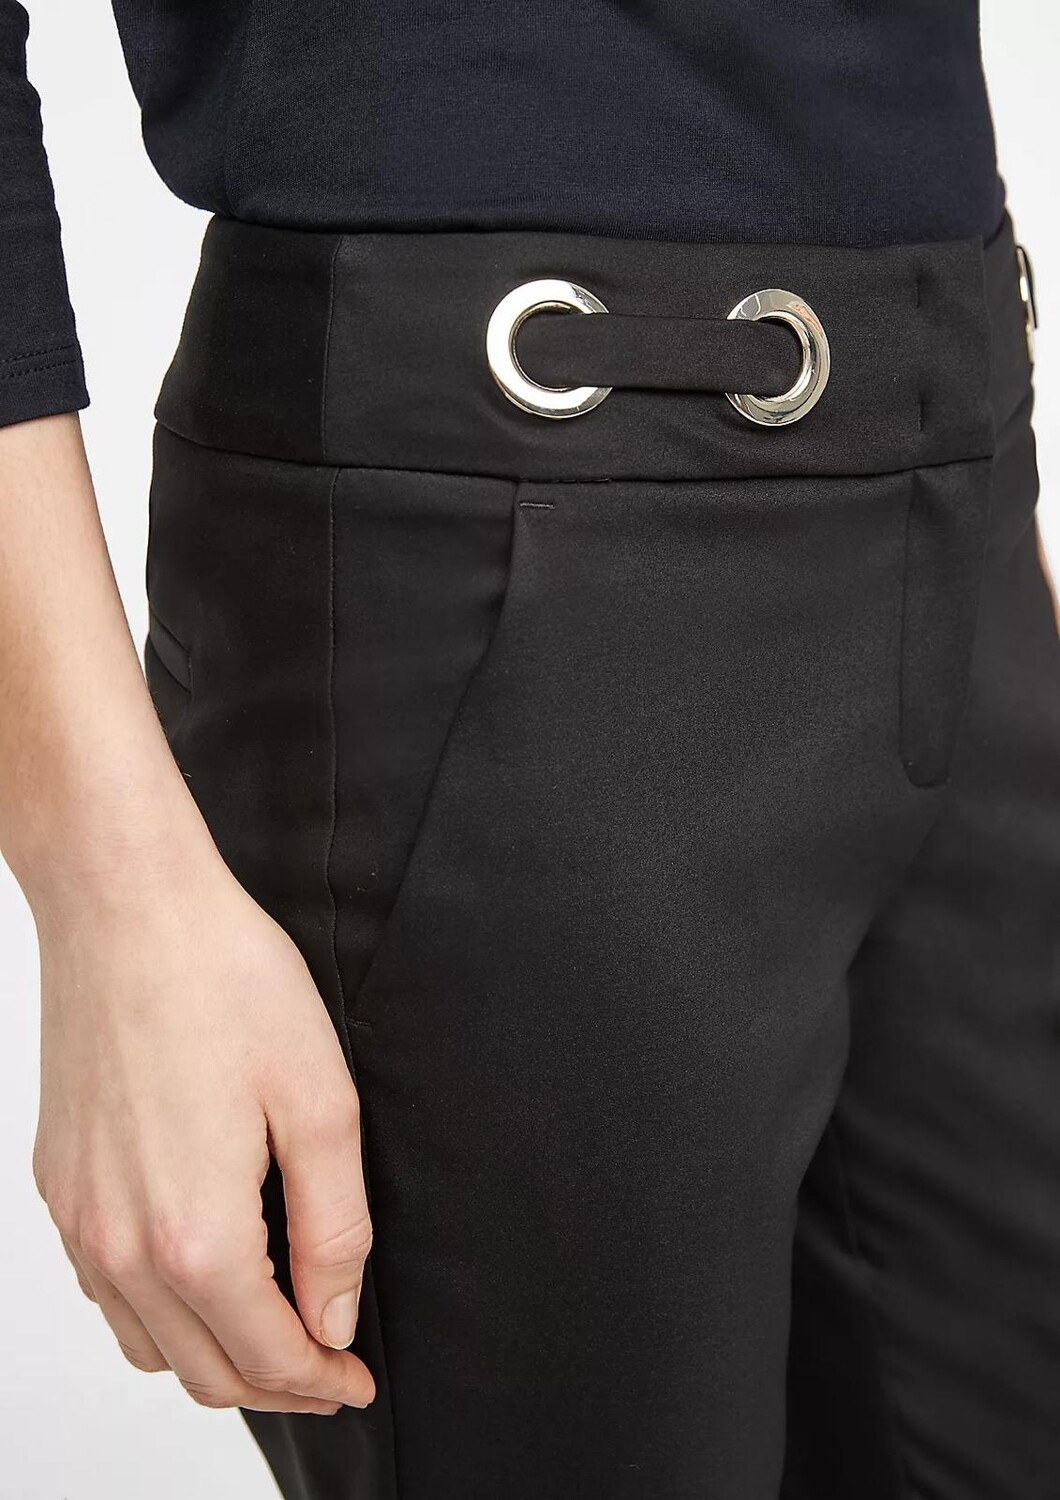 Black Slim Leg Trousers with Silver Circle Detail on Waist Band